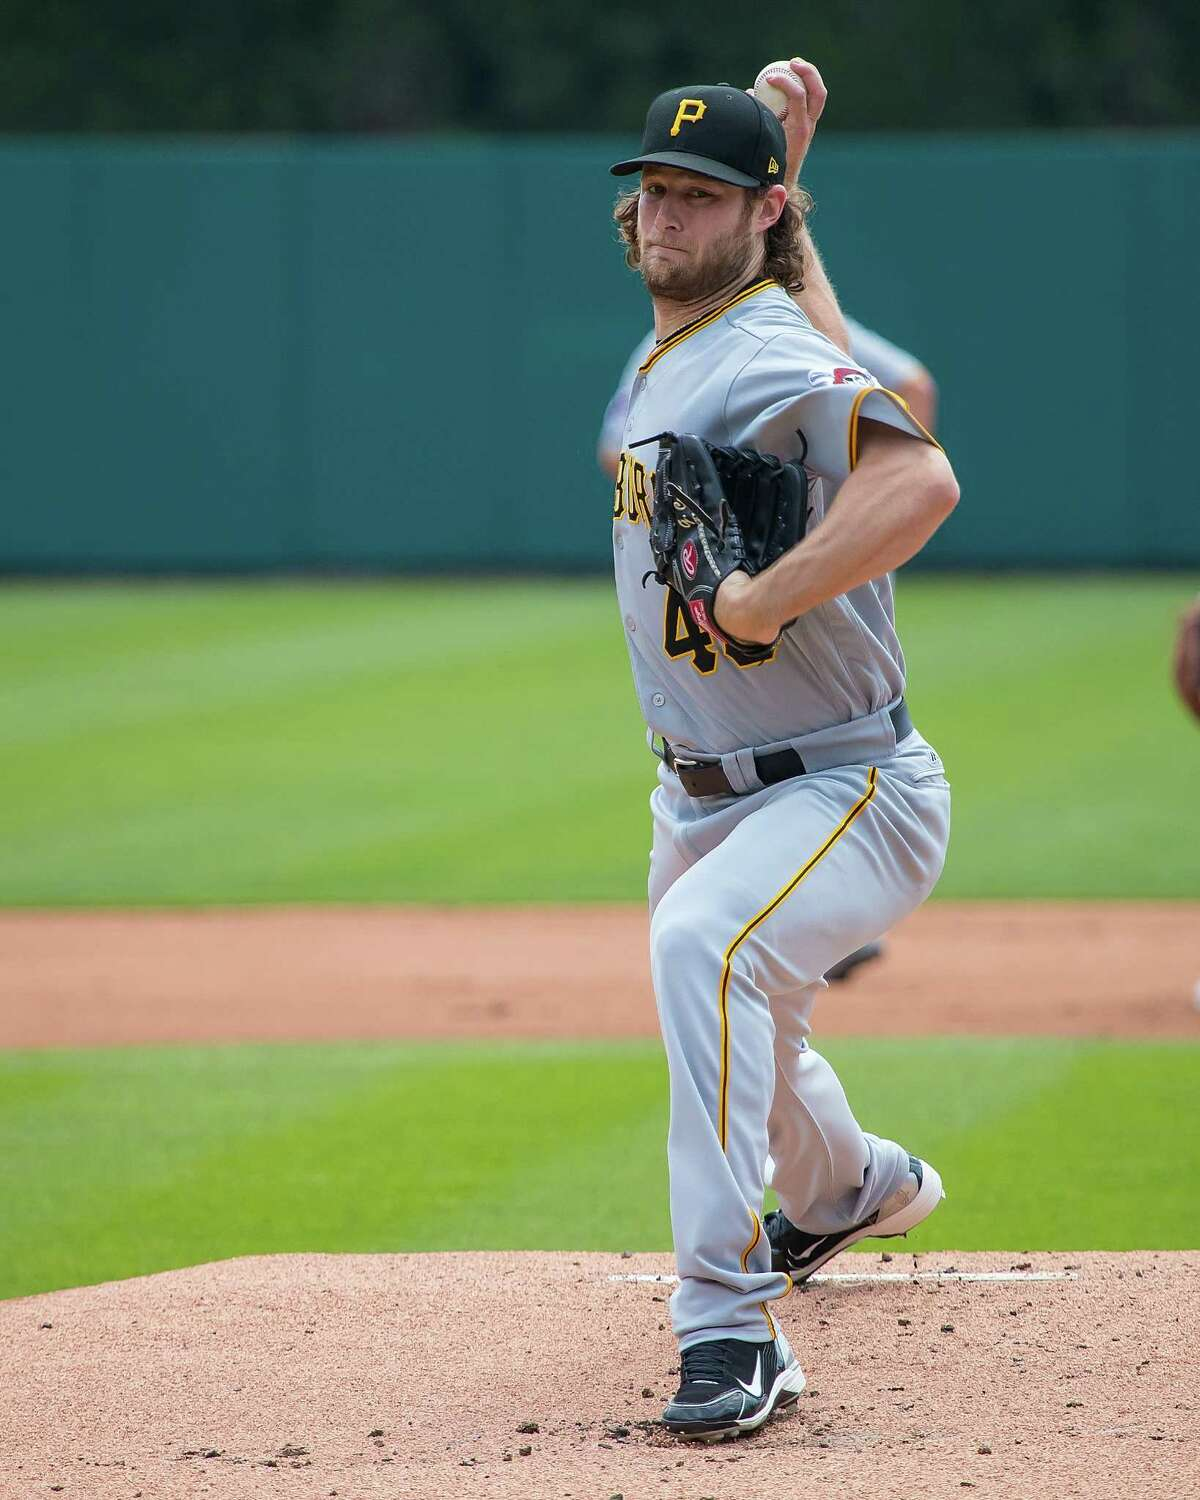 DETROIT, MI - AUGUST 10: Gerrit Cole #45 of the Pittsburgh Pirates warms up before a MLB game against the Detroit Tigers at Comerica Park on August 10, 2017 in Detroit, Michigan. The Pirates defeated the Tigers 7-5. (Photo by Dave Reginek/Getty Images)*** Local Caption *** Gerrit Cole